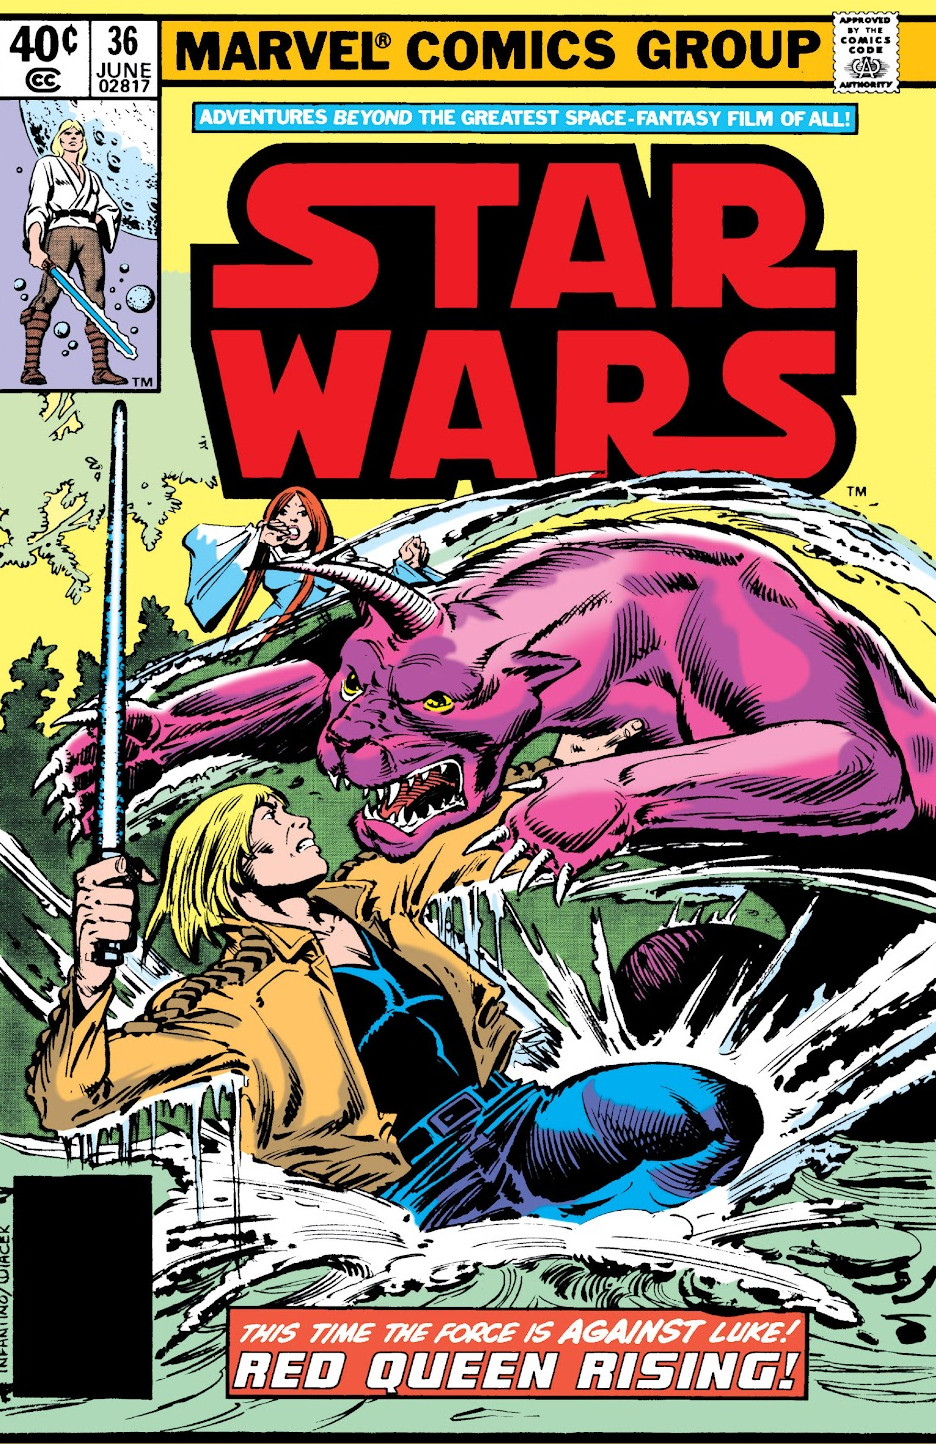 Star Wars Vol 1 36